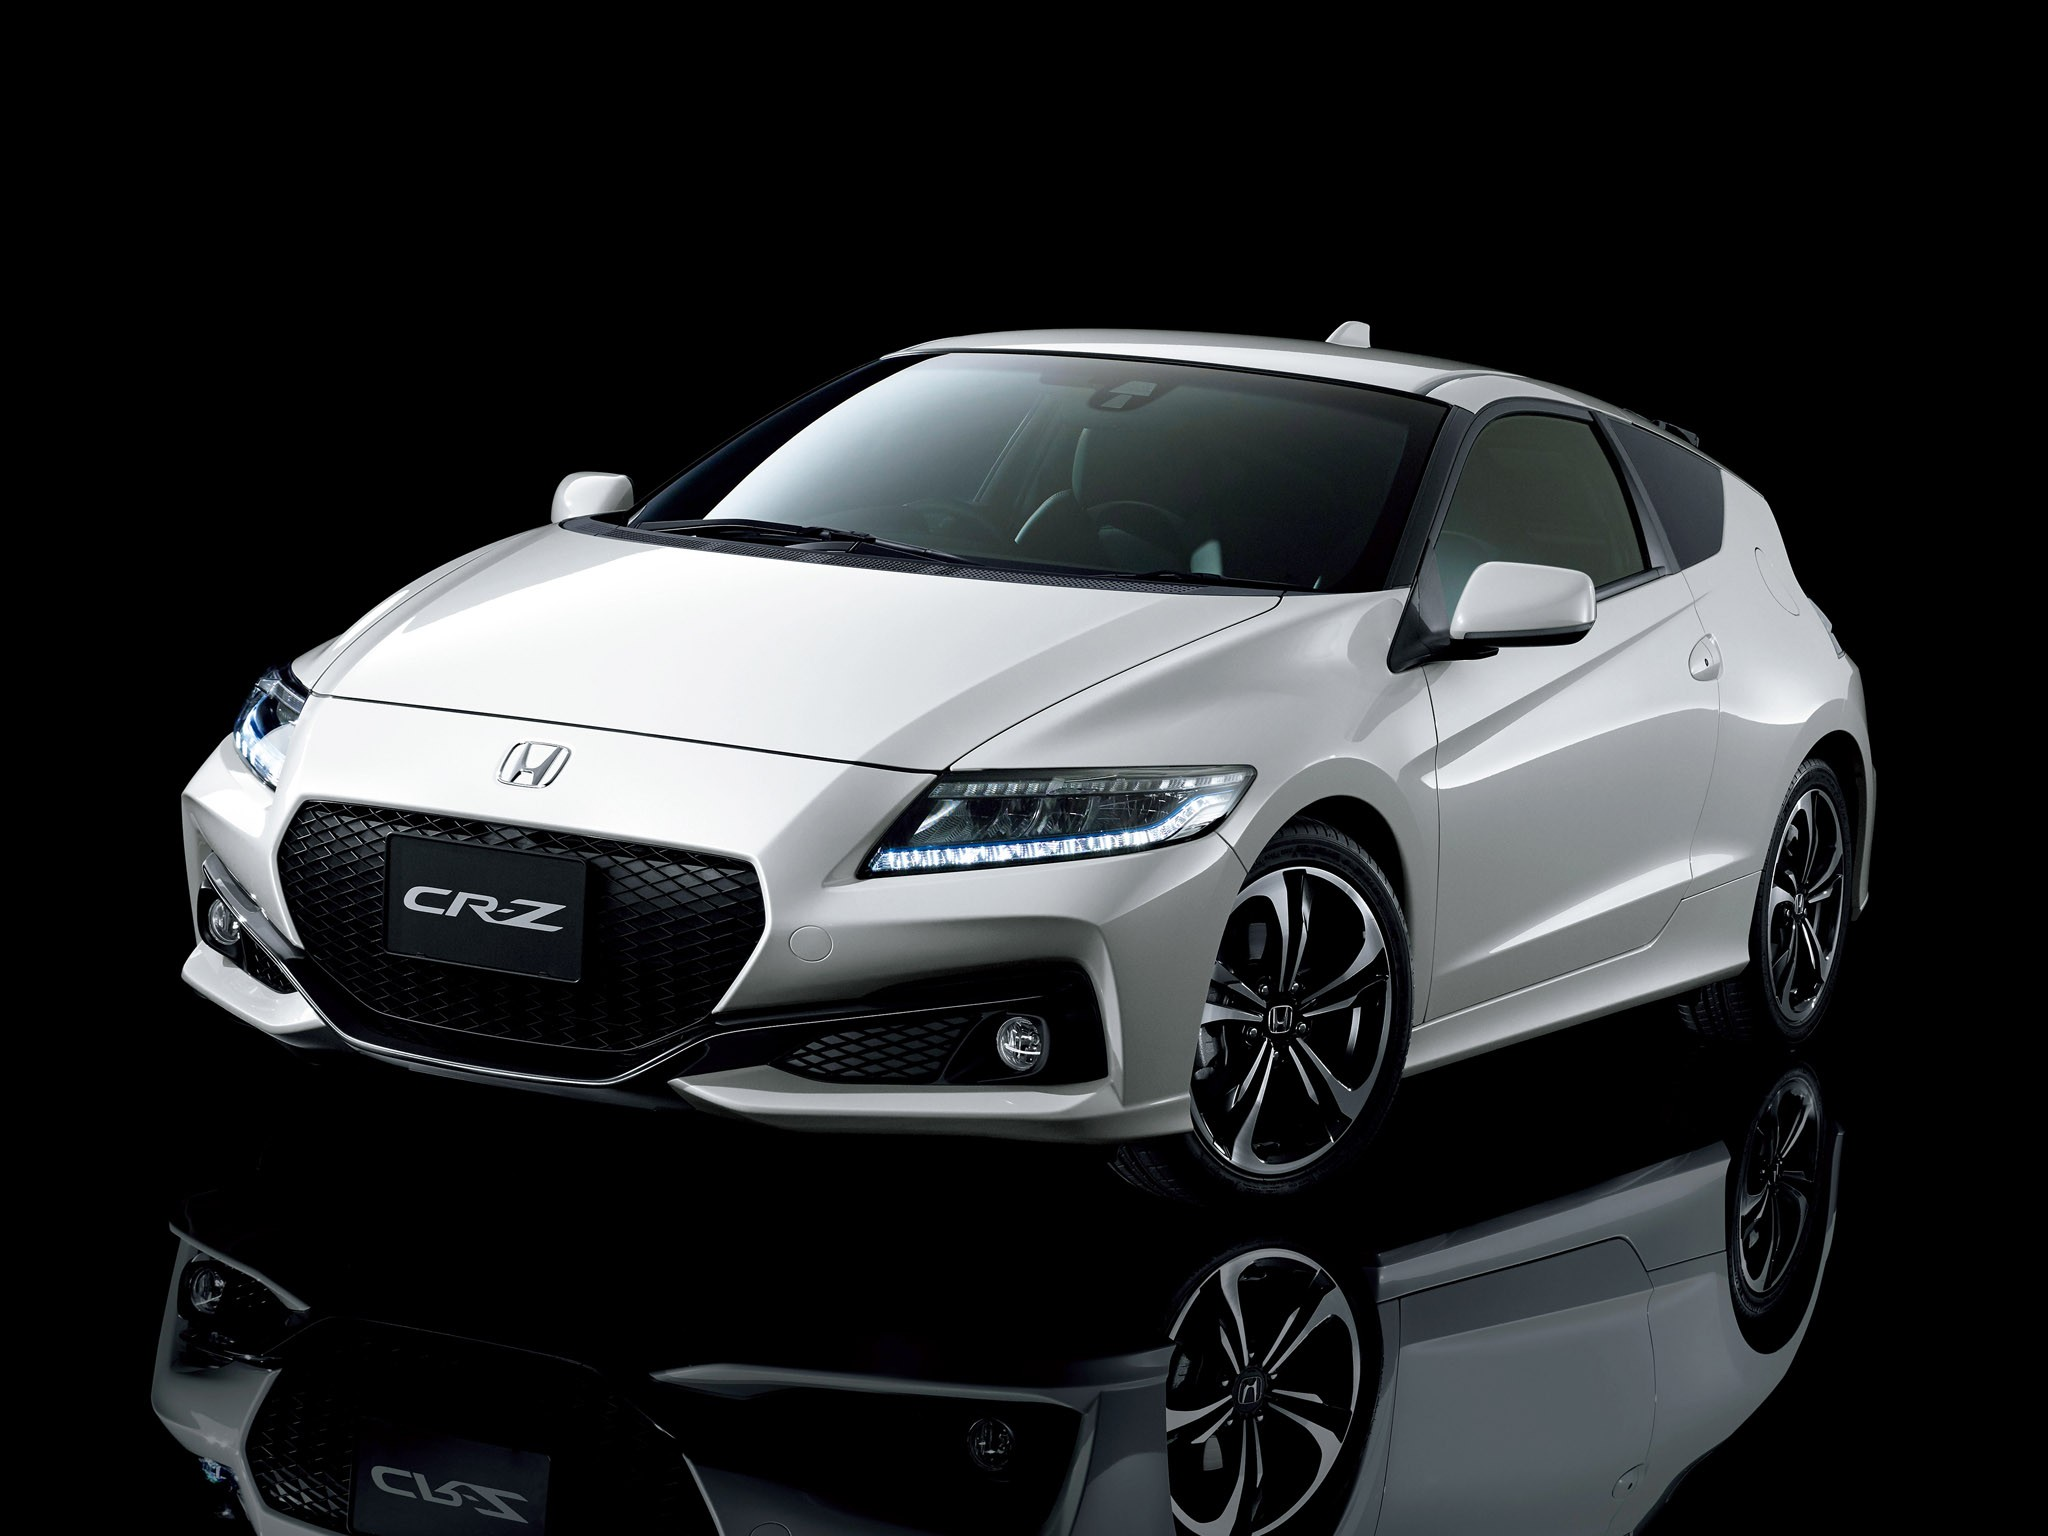 2015 Honda CR-Z ZF1 Japan